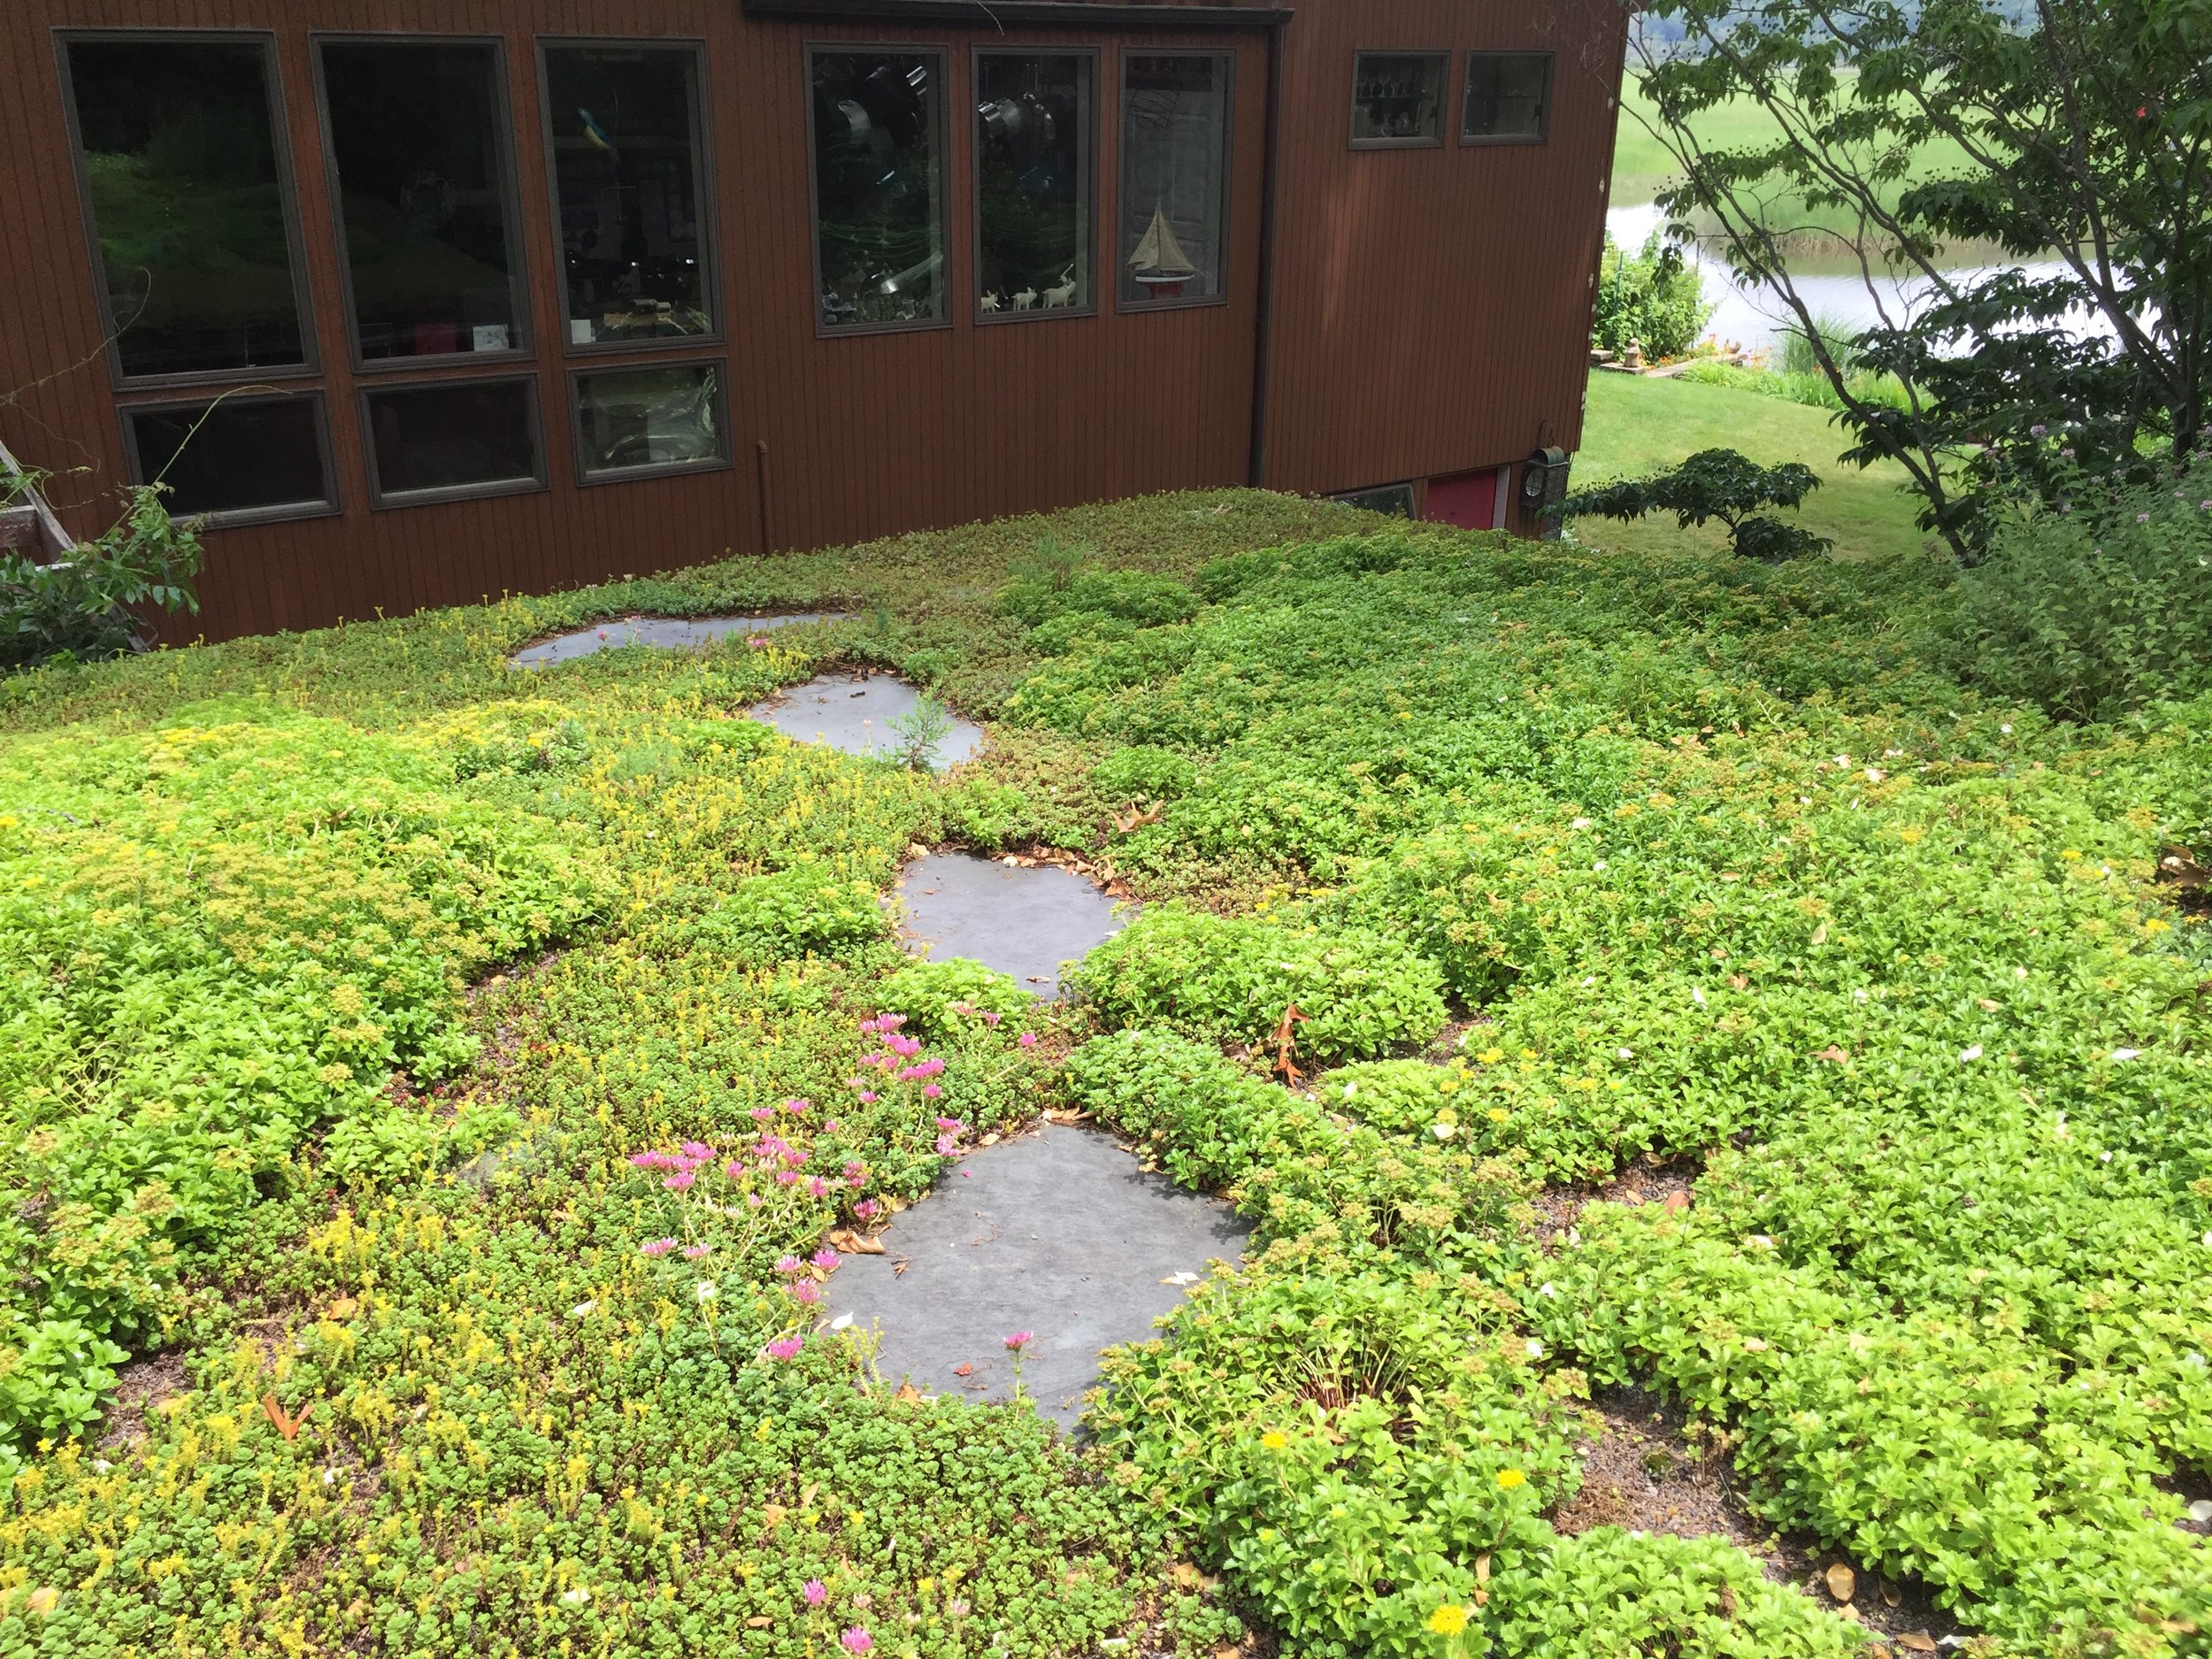 recover-green-roofs-turtle-bay-2016-26.jpg